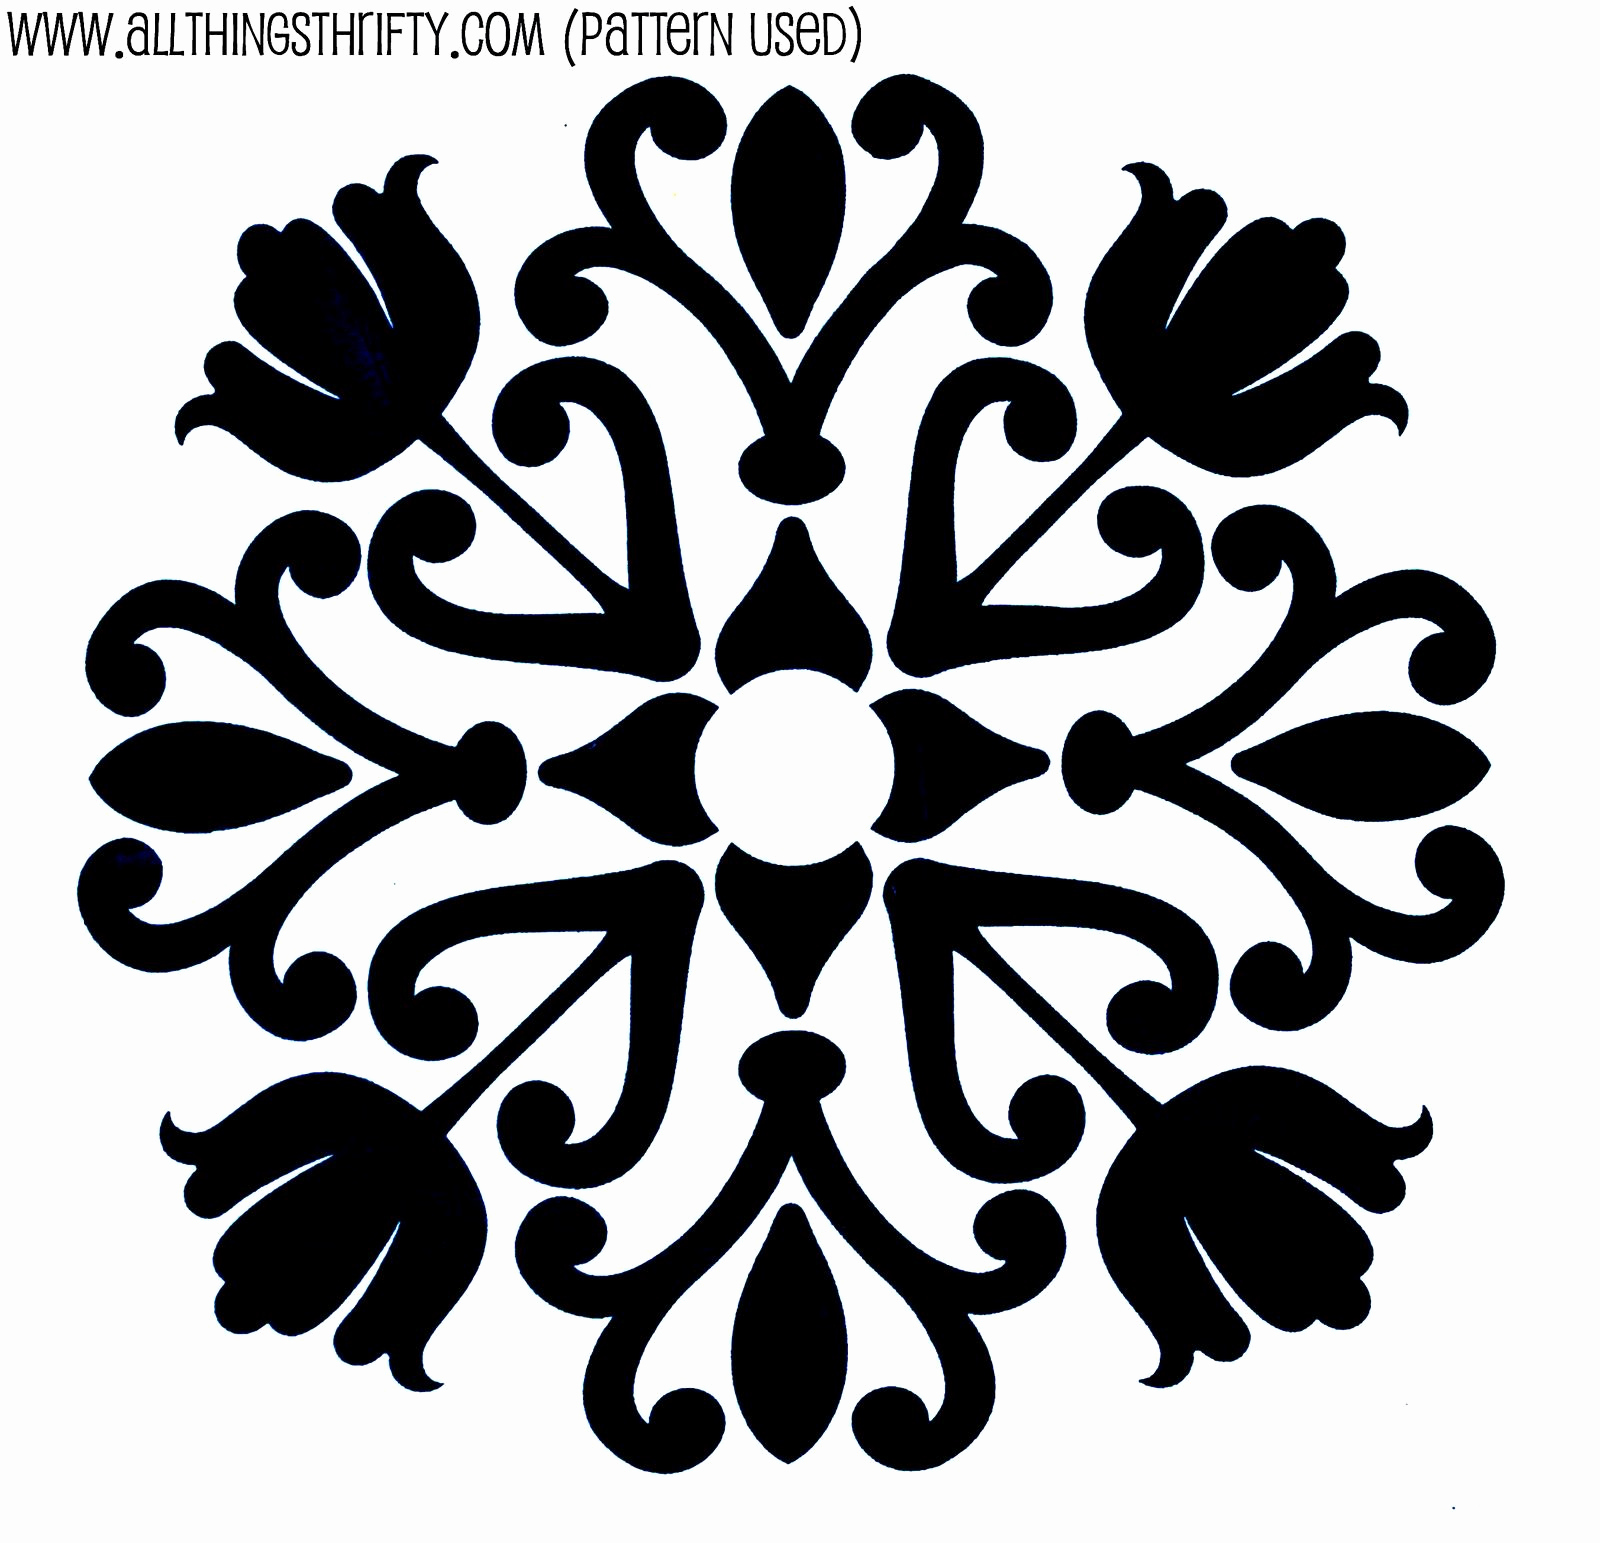 Free Printable Stencils for Painting Luxury Stencil Patterns Just for You